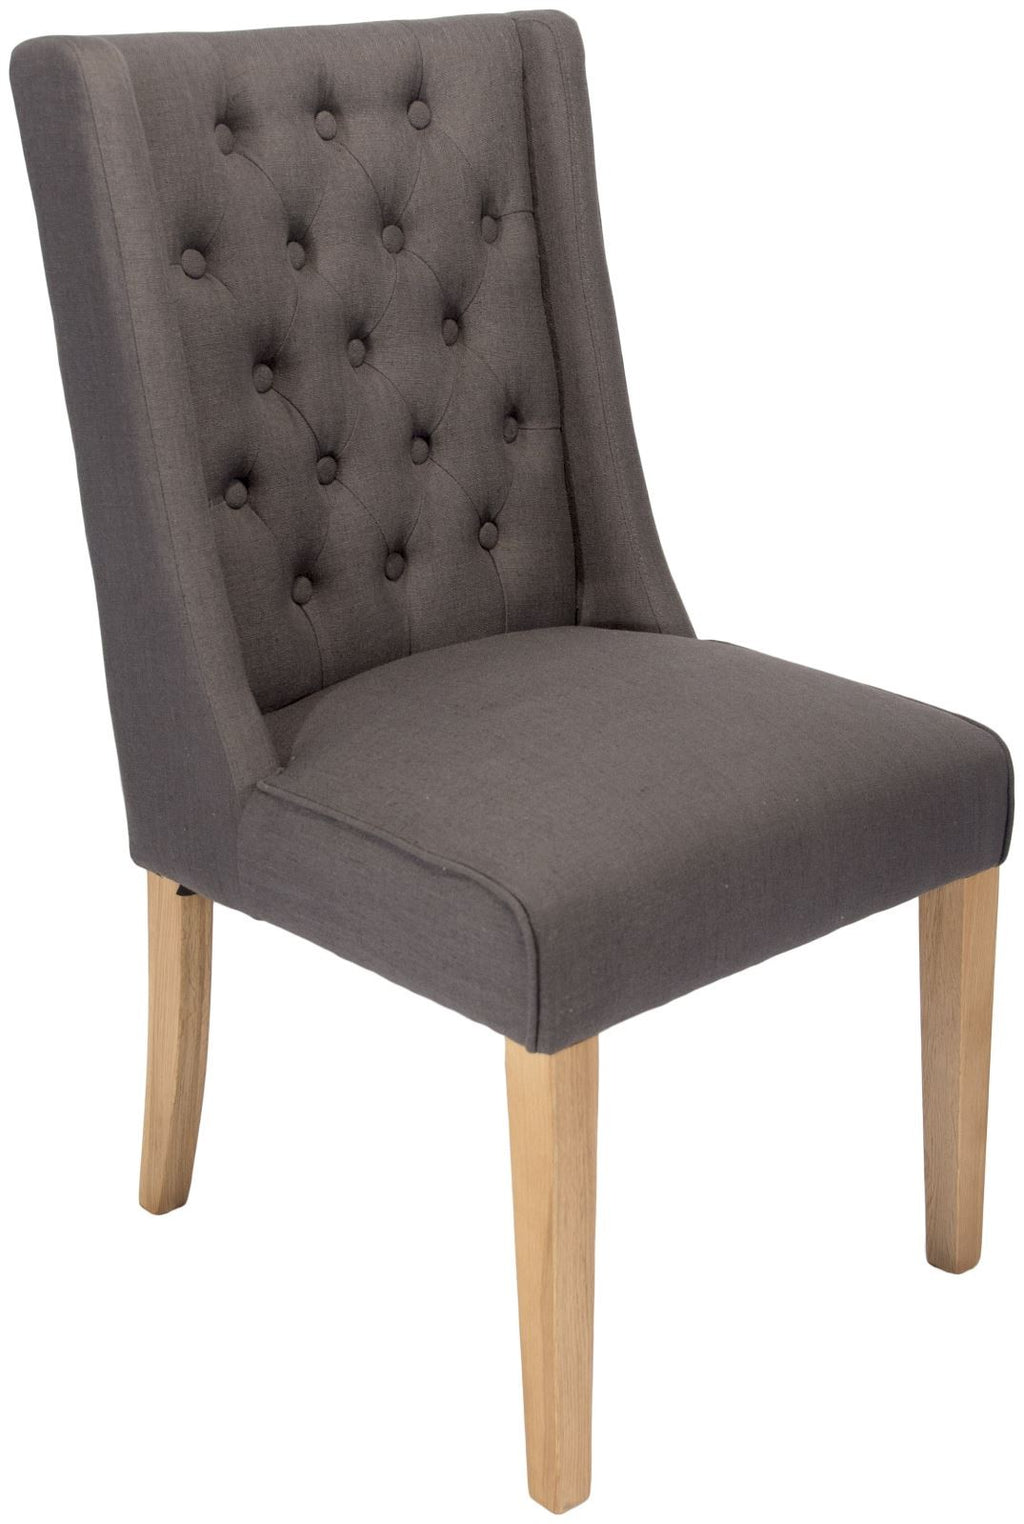 Cairo Dining Chair Slate - Tylers Department Store